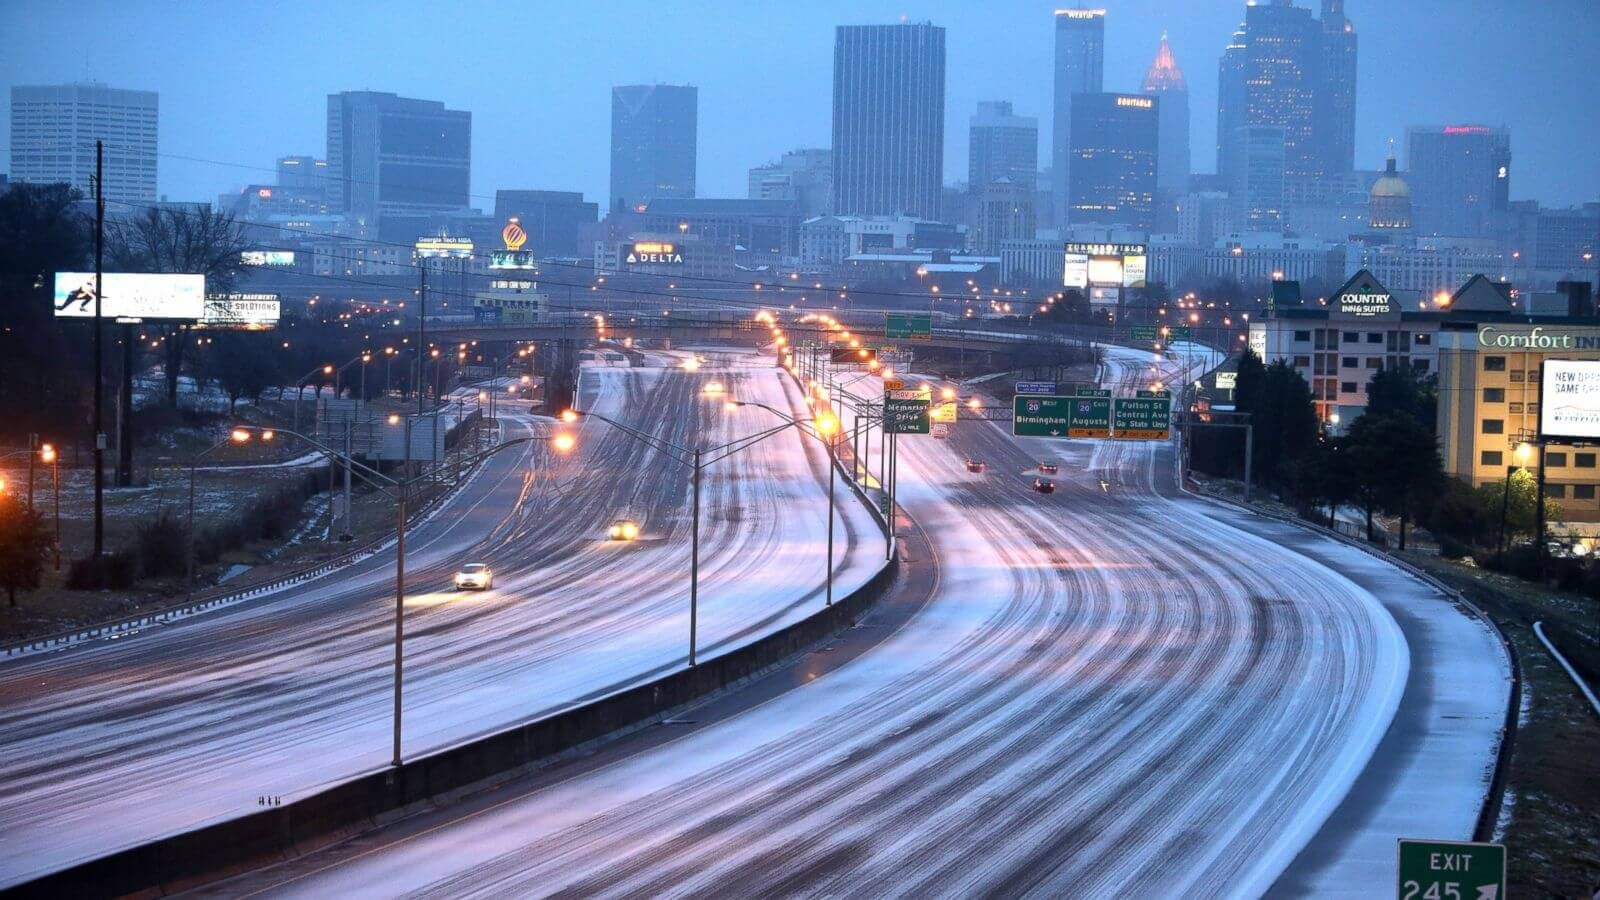 servicemaster by bailey atlanta winter weather terms